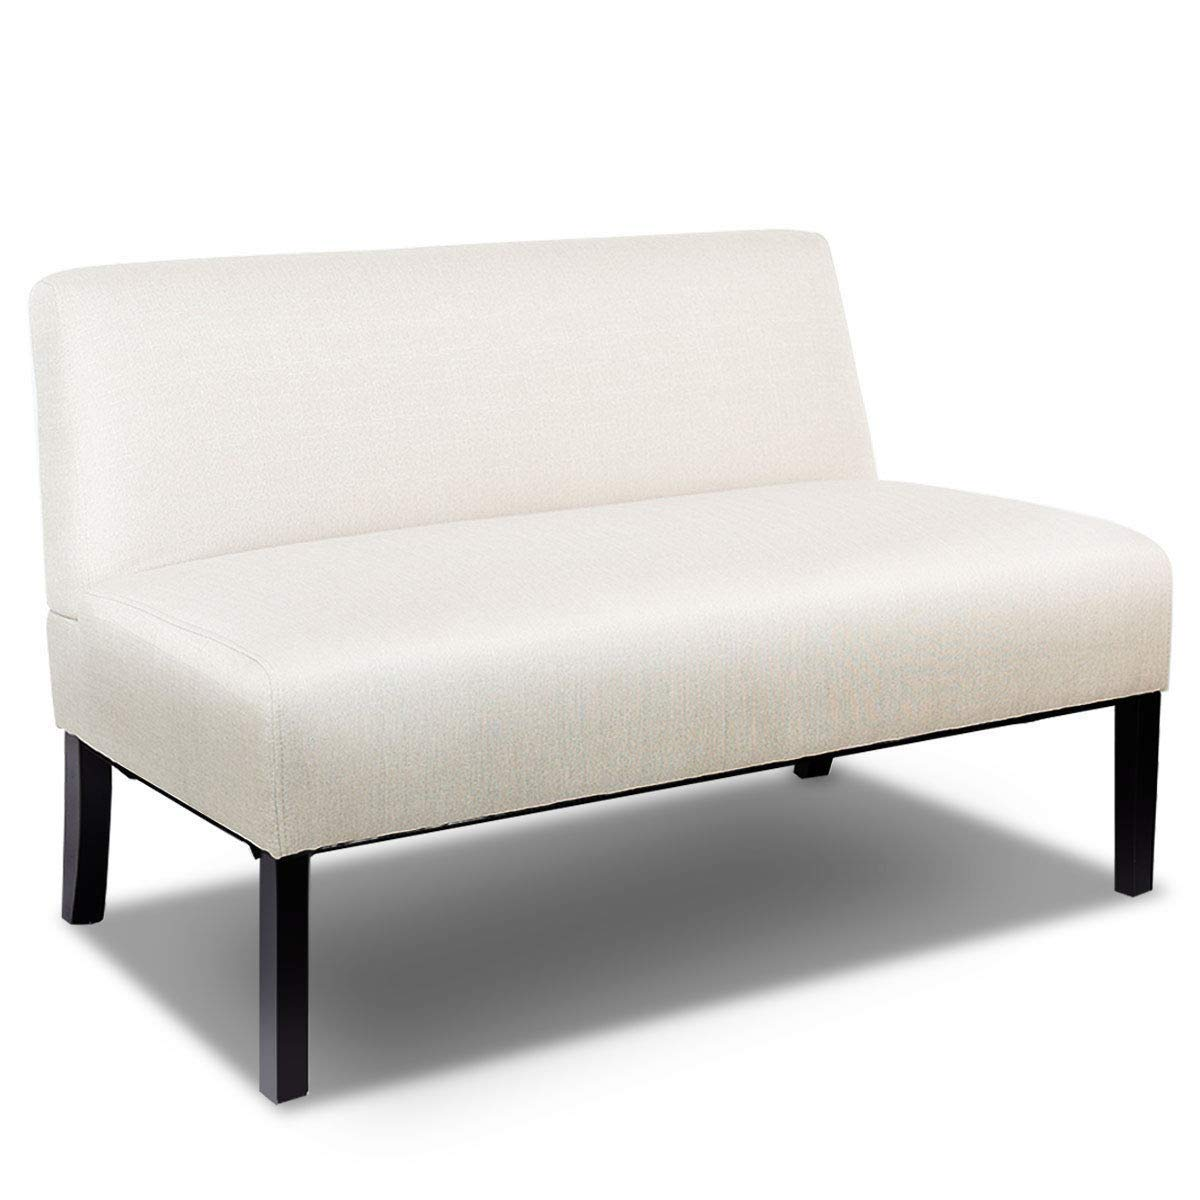 Cheap Armless Sofa, find Armless Sofa deals on line at ...